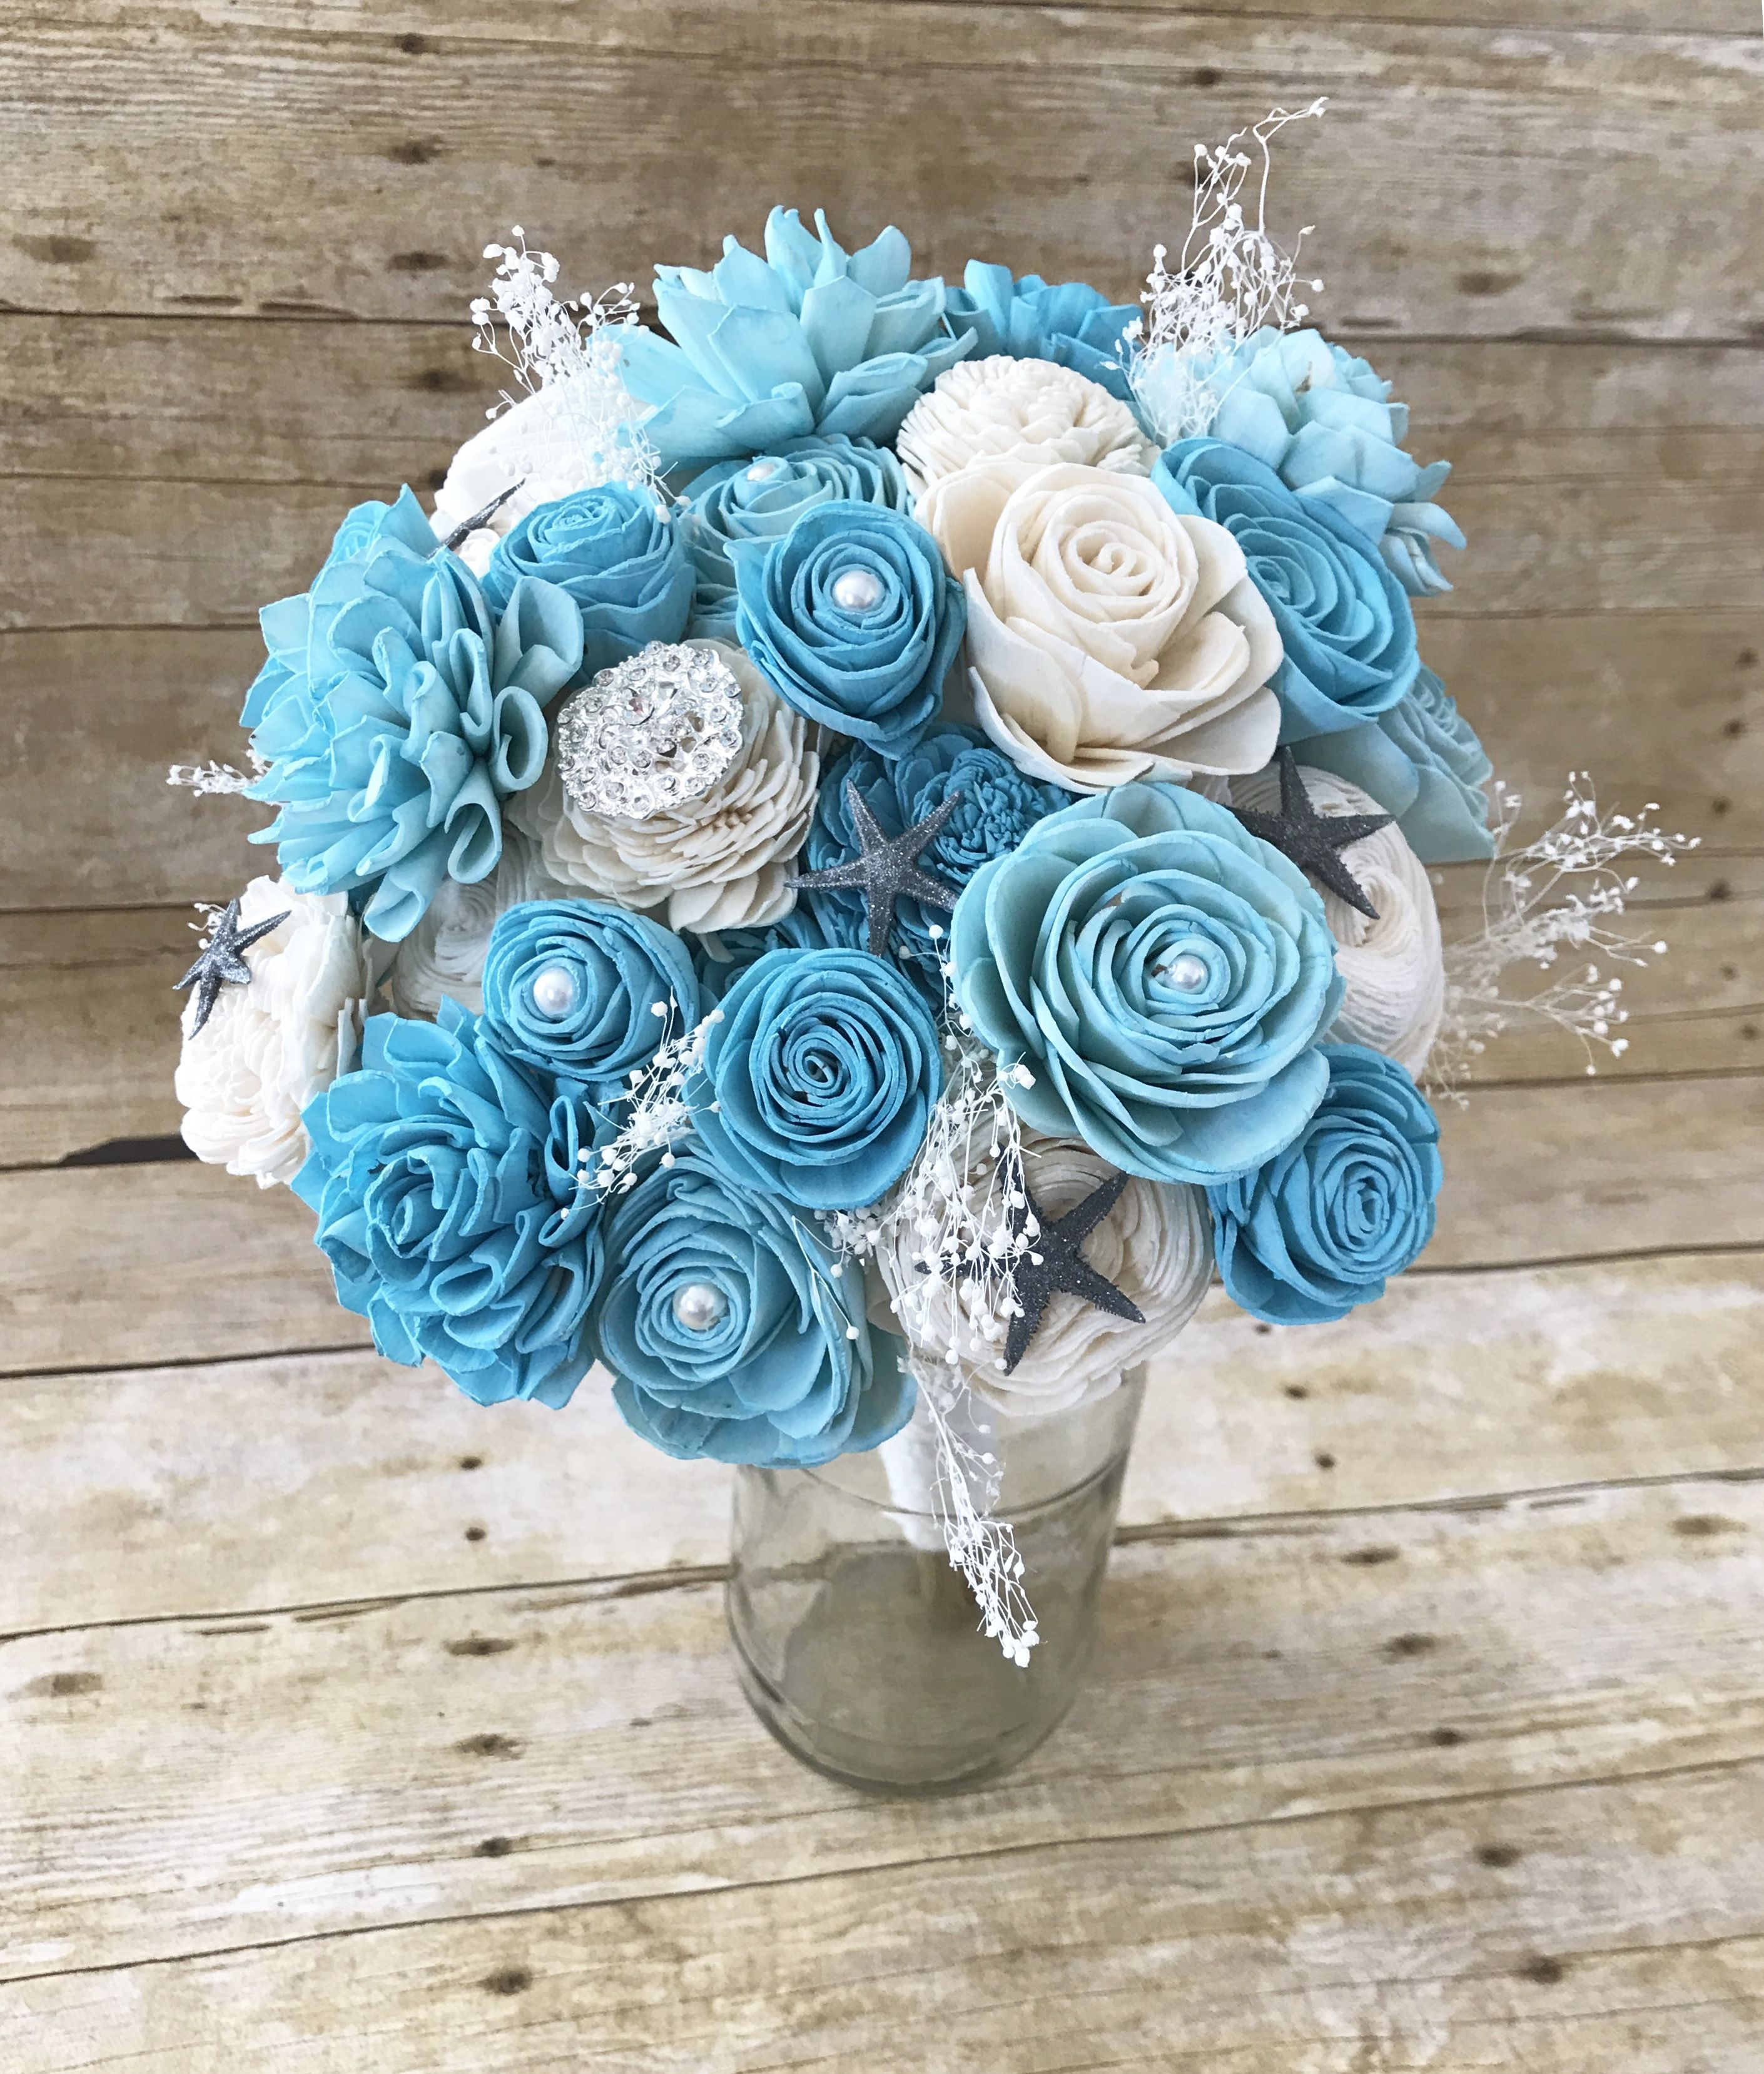 This Wood Flower Mermaid Bouquet Is The Perfect Addition For A Beach Themed Wedding Pearls And Beach Theme Wedding Flower Bouquet Wedding Silk Flowers Wedding